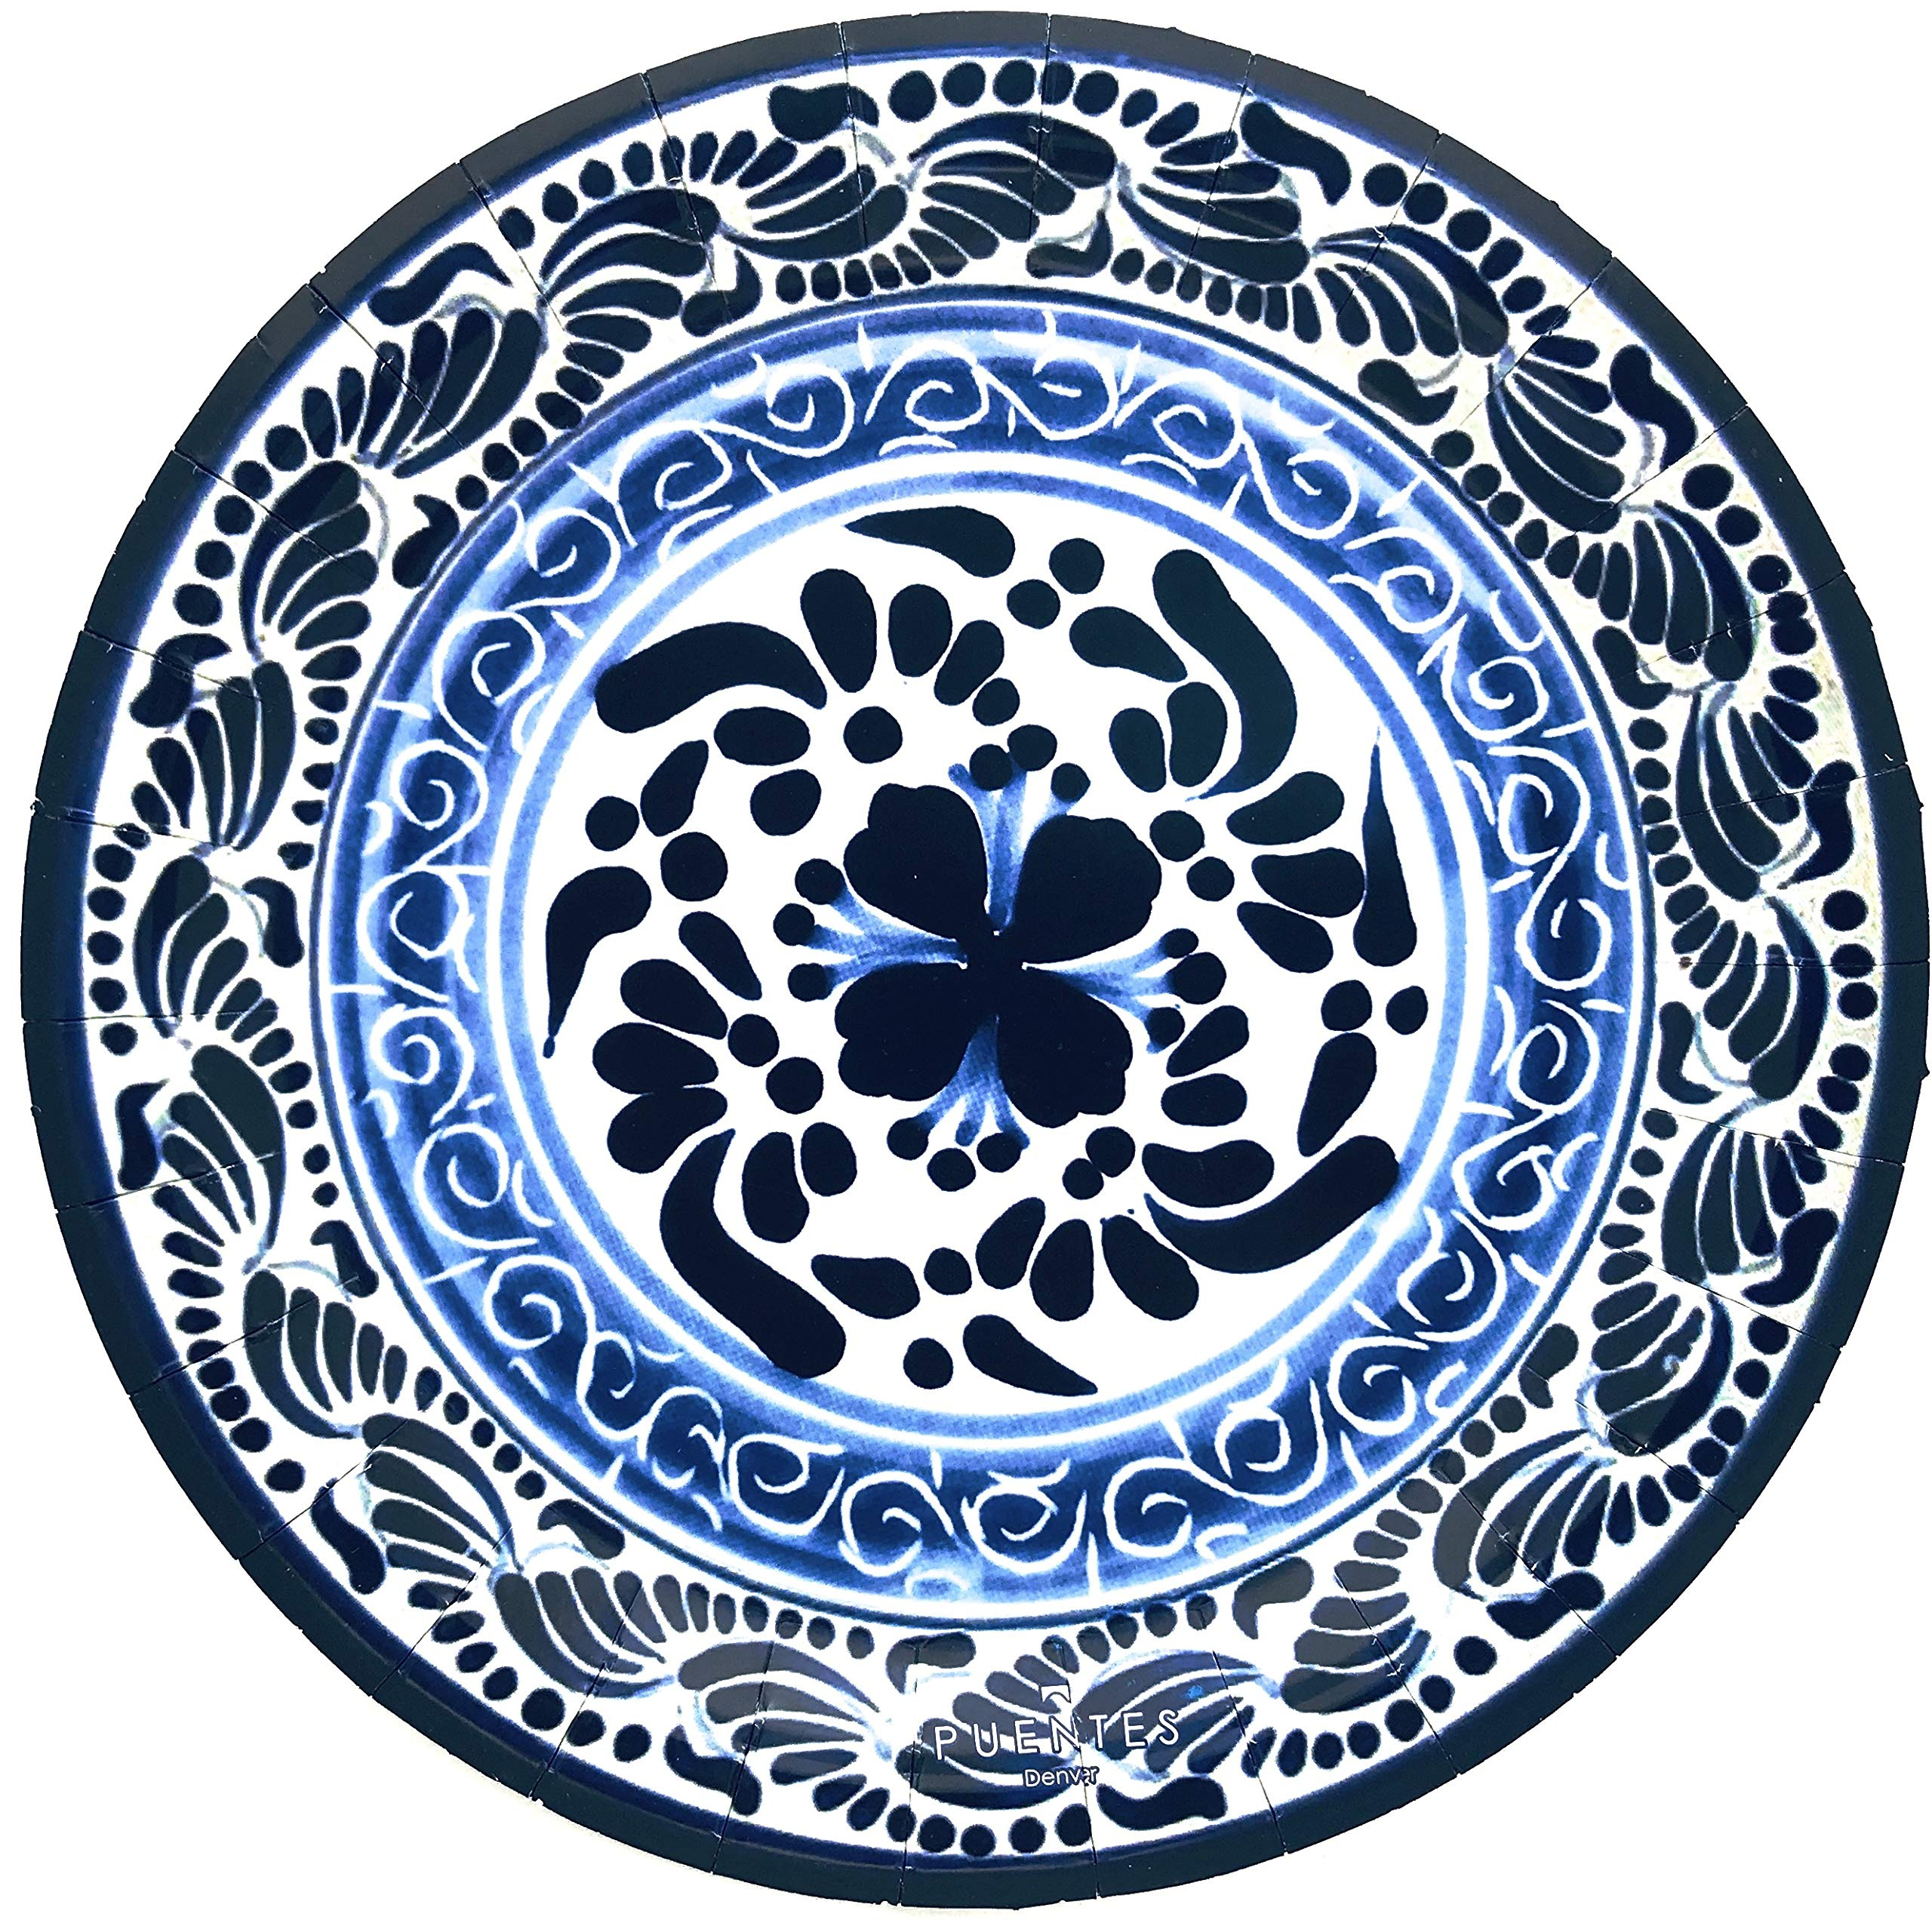 Paper Plates Mexican Design Talavera Design Mexico Themed Party Fiesta, 40-Pack by Puentes Denver